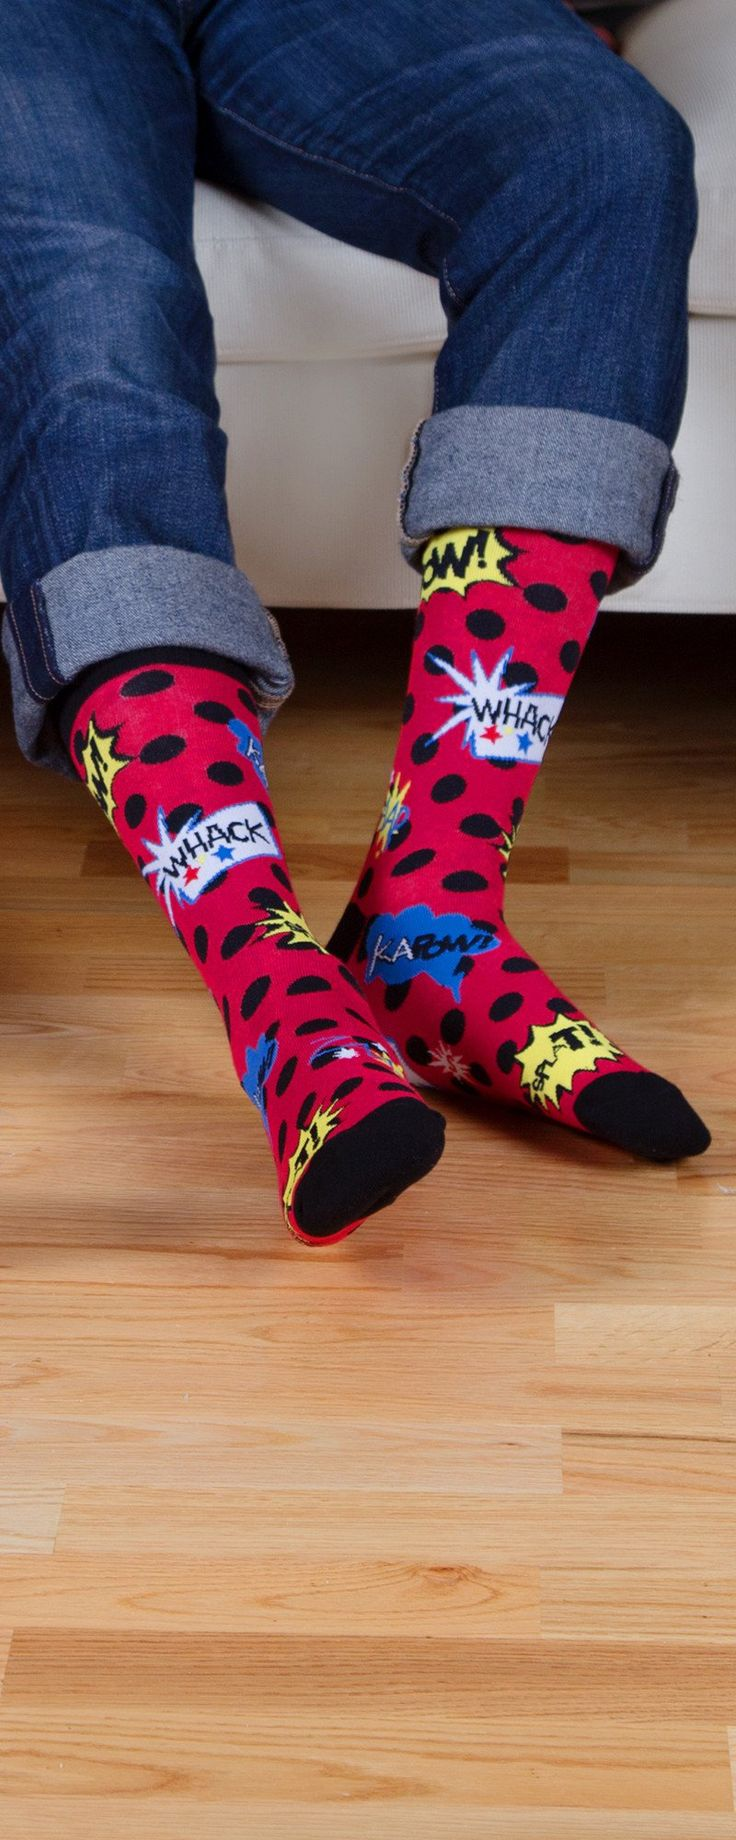 From flying cats to bacon, these quirky socks are sure to grab attention. Discovered by The Grommet, they are soft, stretchy, and packed full of personality.